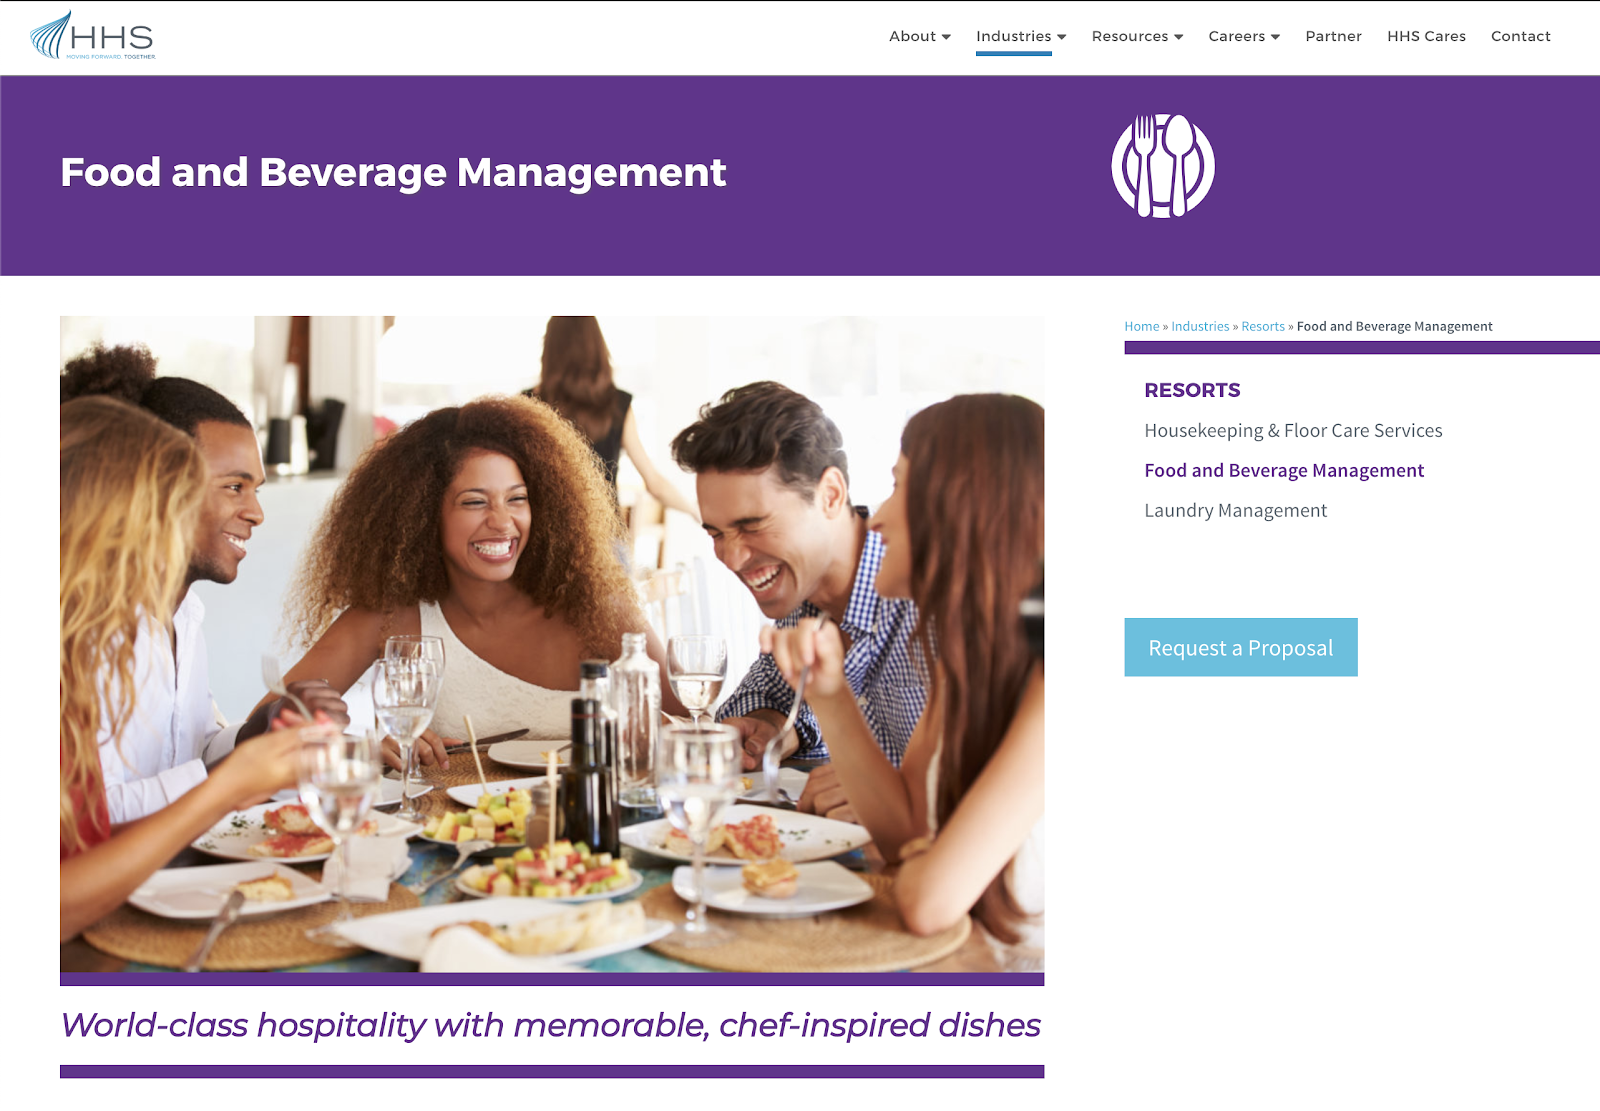 Service line pages feature icons and lifestyle photography to capture the user's attention